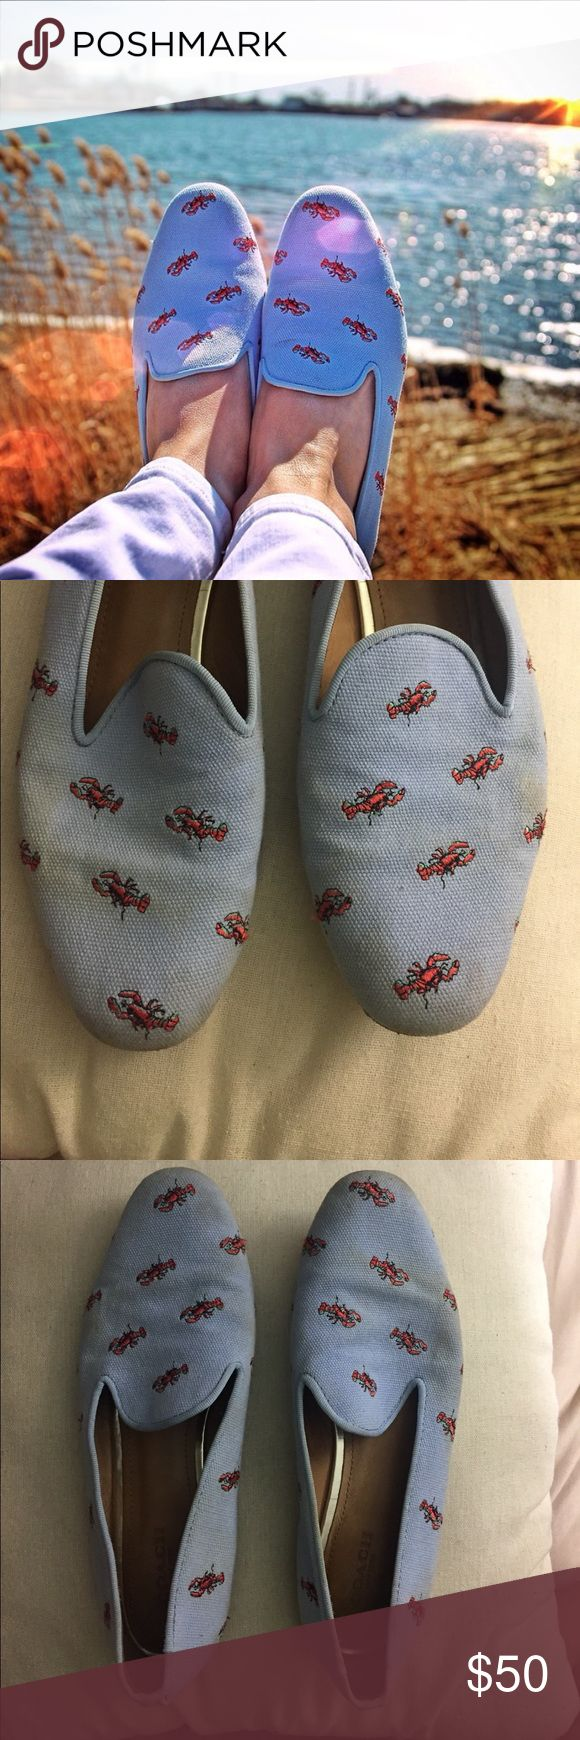 Coach Utopia Lobster Flats Super cute flats. The shoes have no odor and the foot beds are very clean. Always worn with no shoe socks. Lots of life left, some stains but to be honest I have not tried to remove so they might come out. Coach Shoes Flats & Loafers